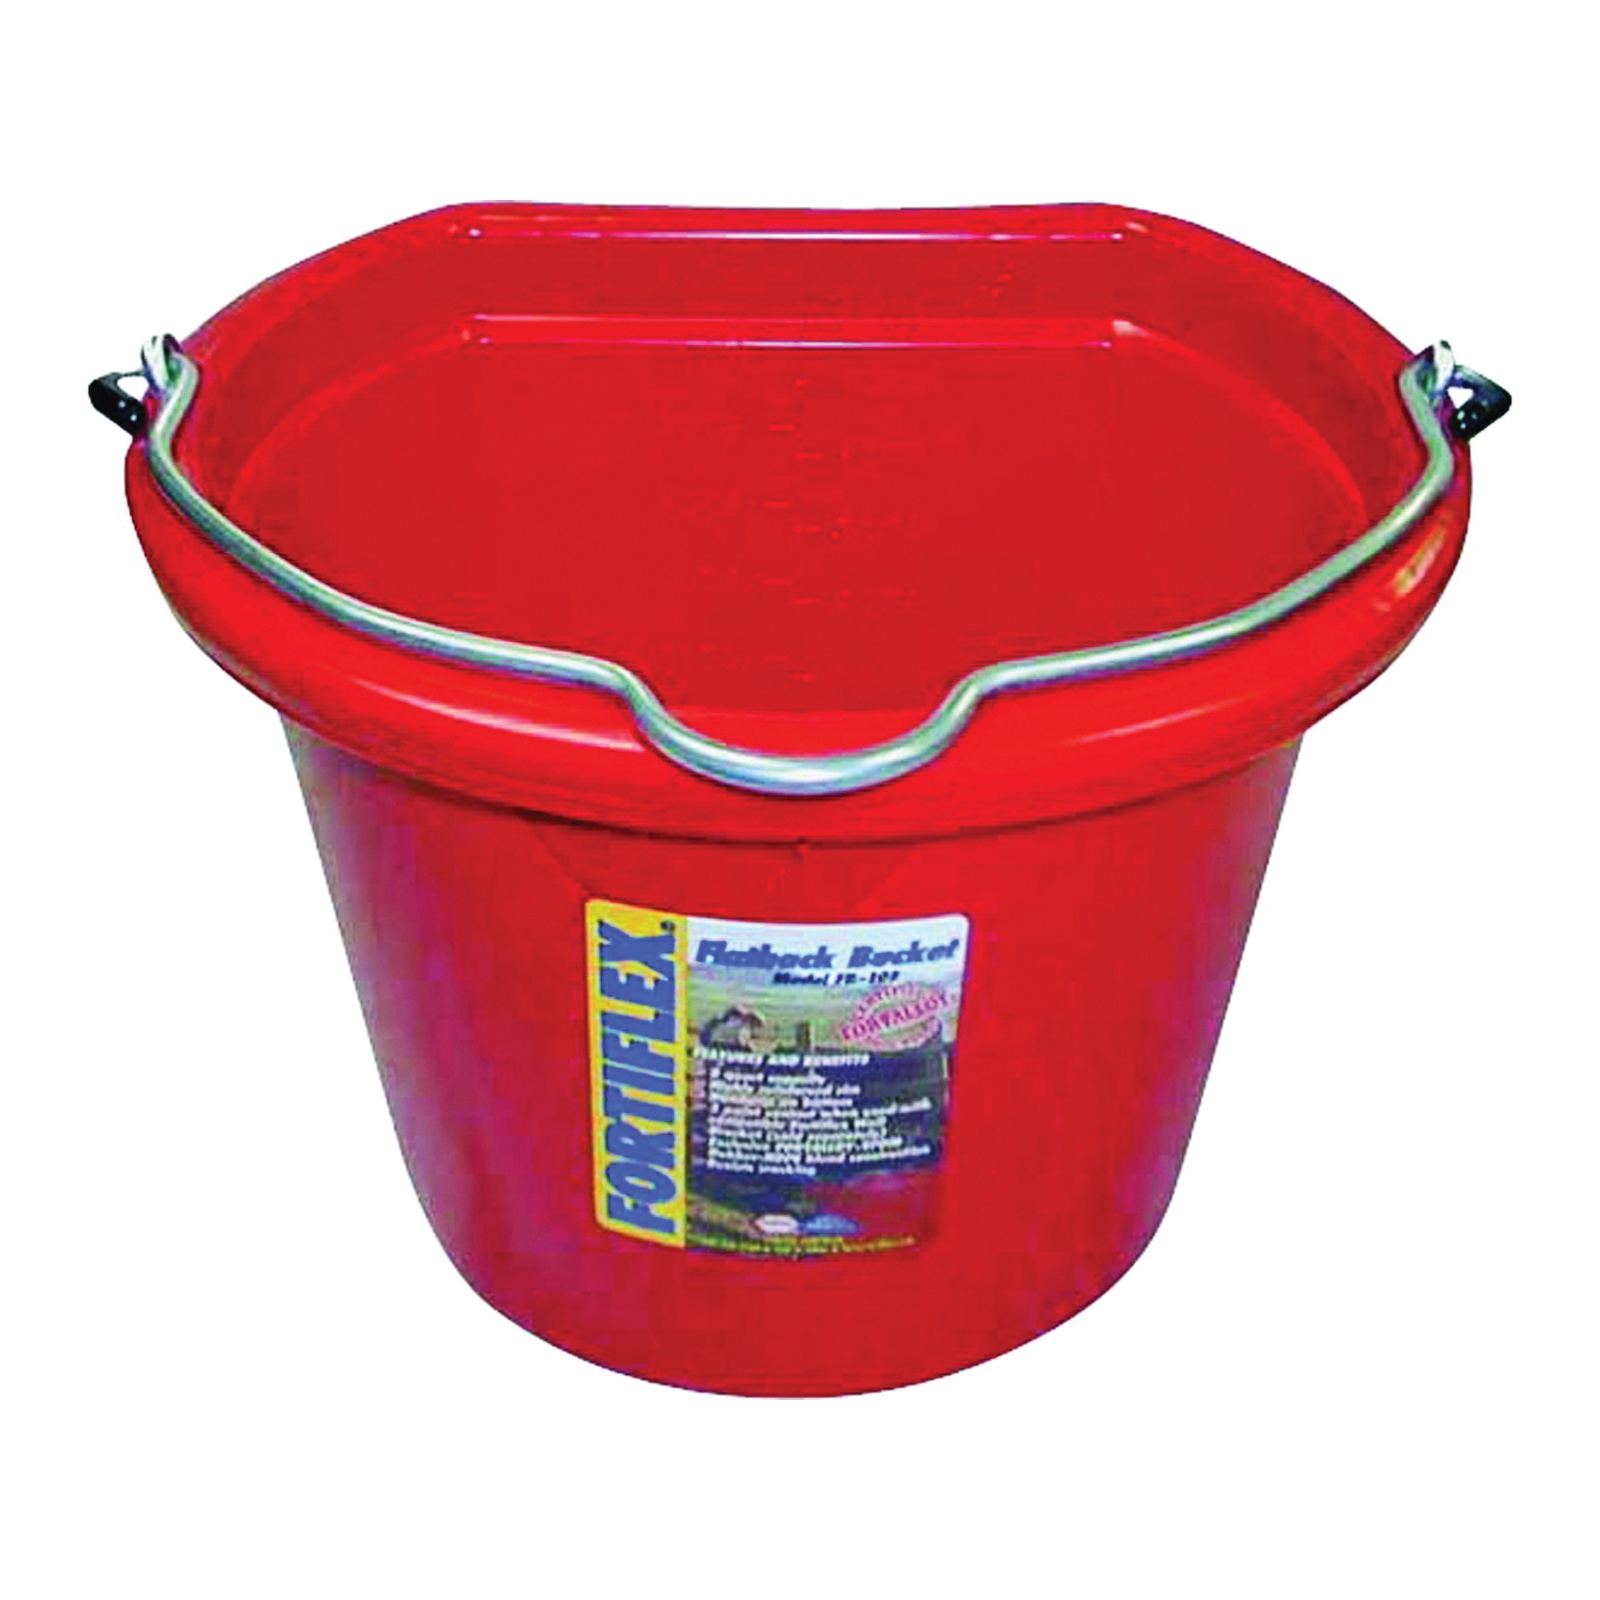 Picture of FORTEX-FORTIFLEX FB-108 FB-108R Bucket, 8 qt Volume, Rubber/Polyethylene, Red